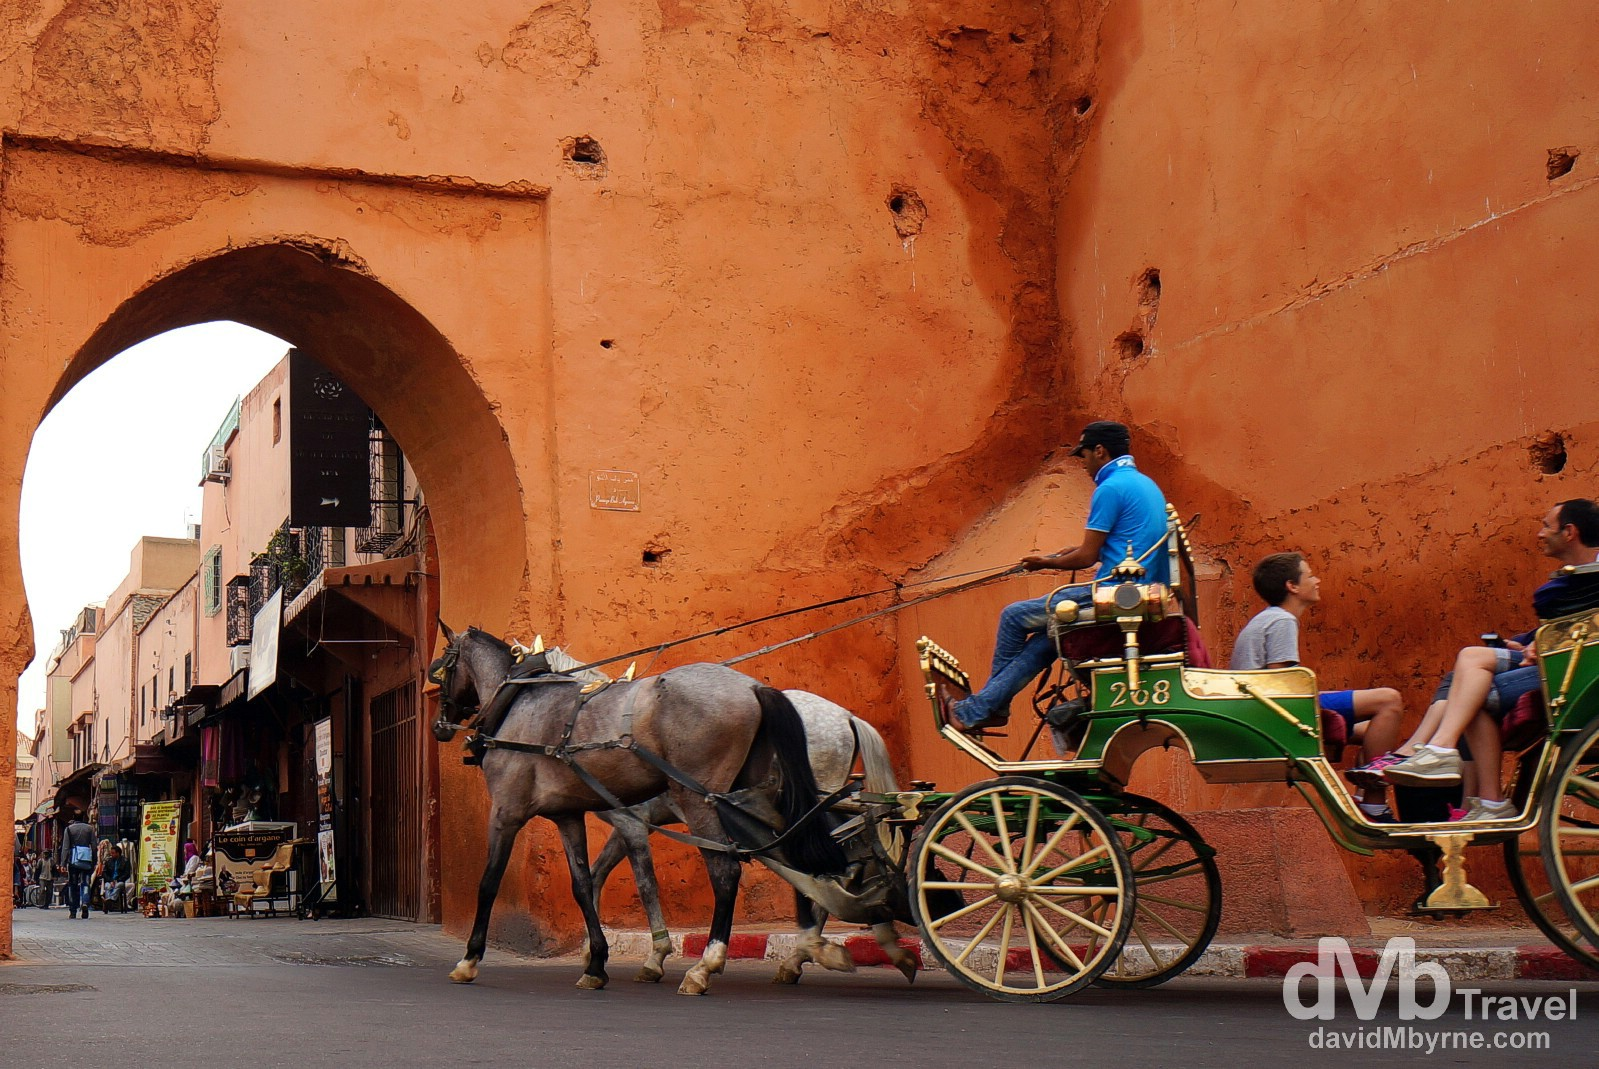 Entering the walls of the UNESCO-listed medina near the Bab Agnaou Gate in Marrakesh, Morocco. May 6th, 2014.